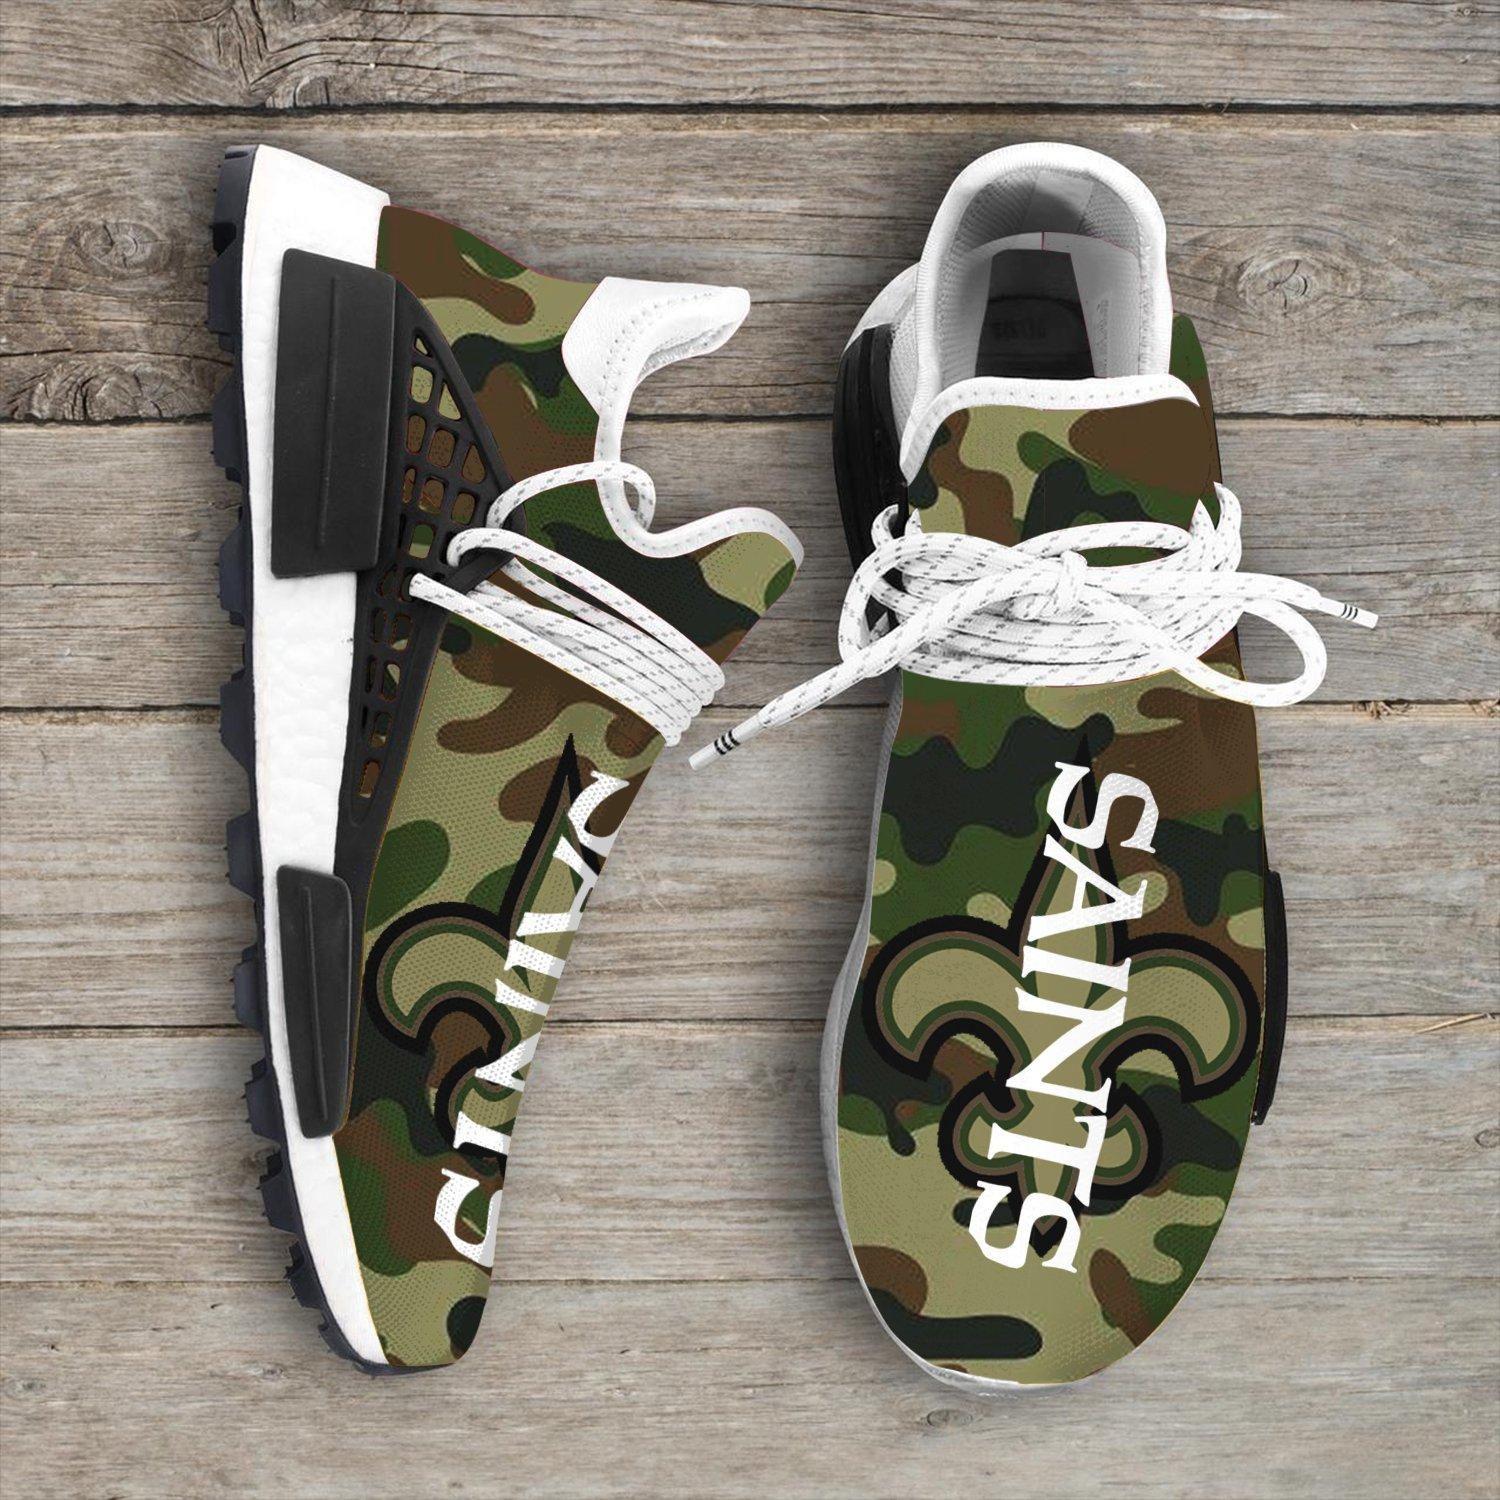 Camo Camouflage New Orleans Saints Nfl NMD Human Shoes